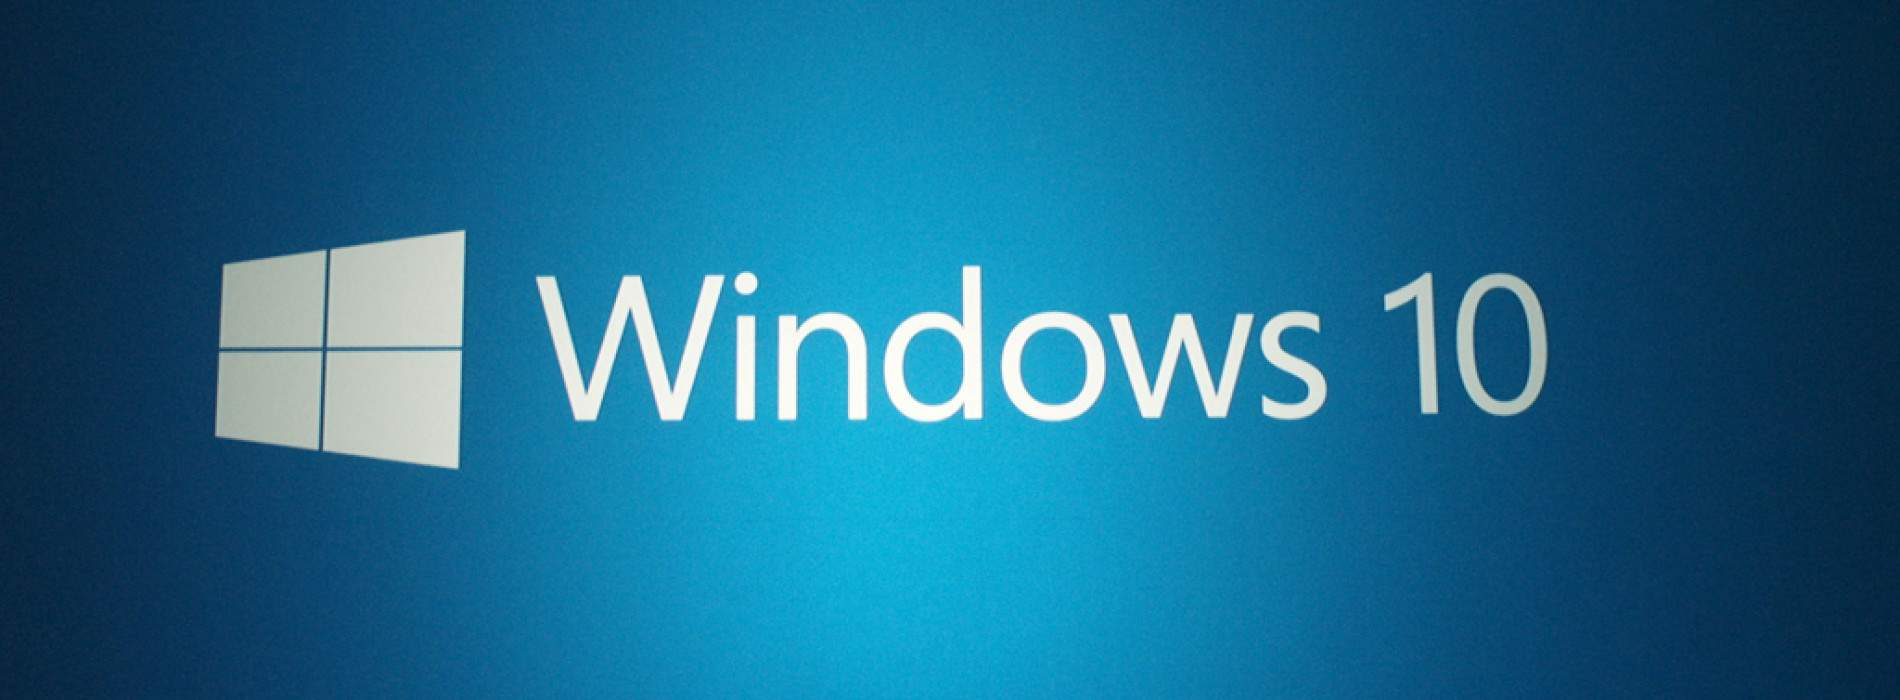 Las 10 claves de Windows 10